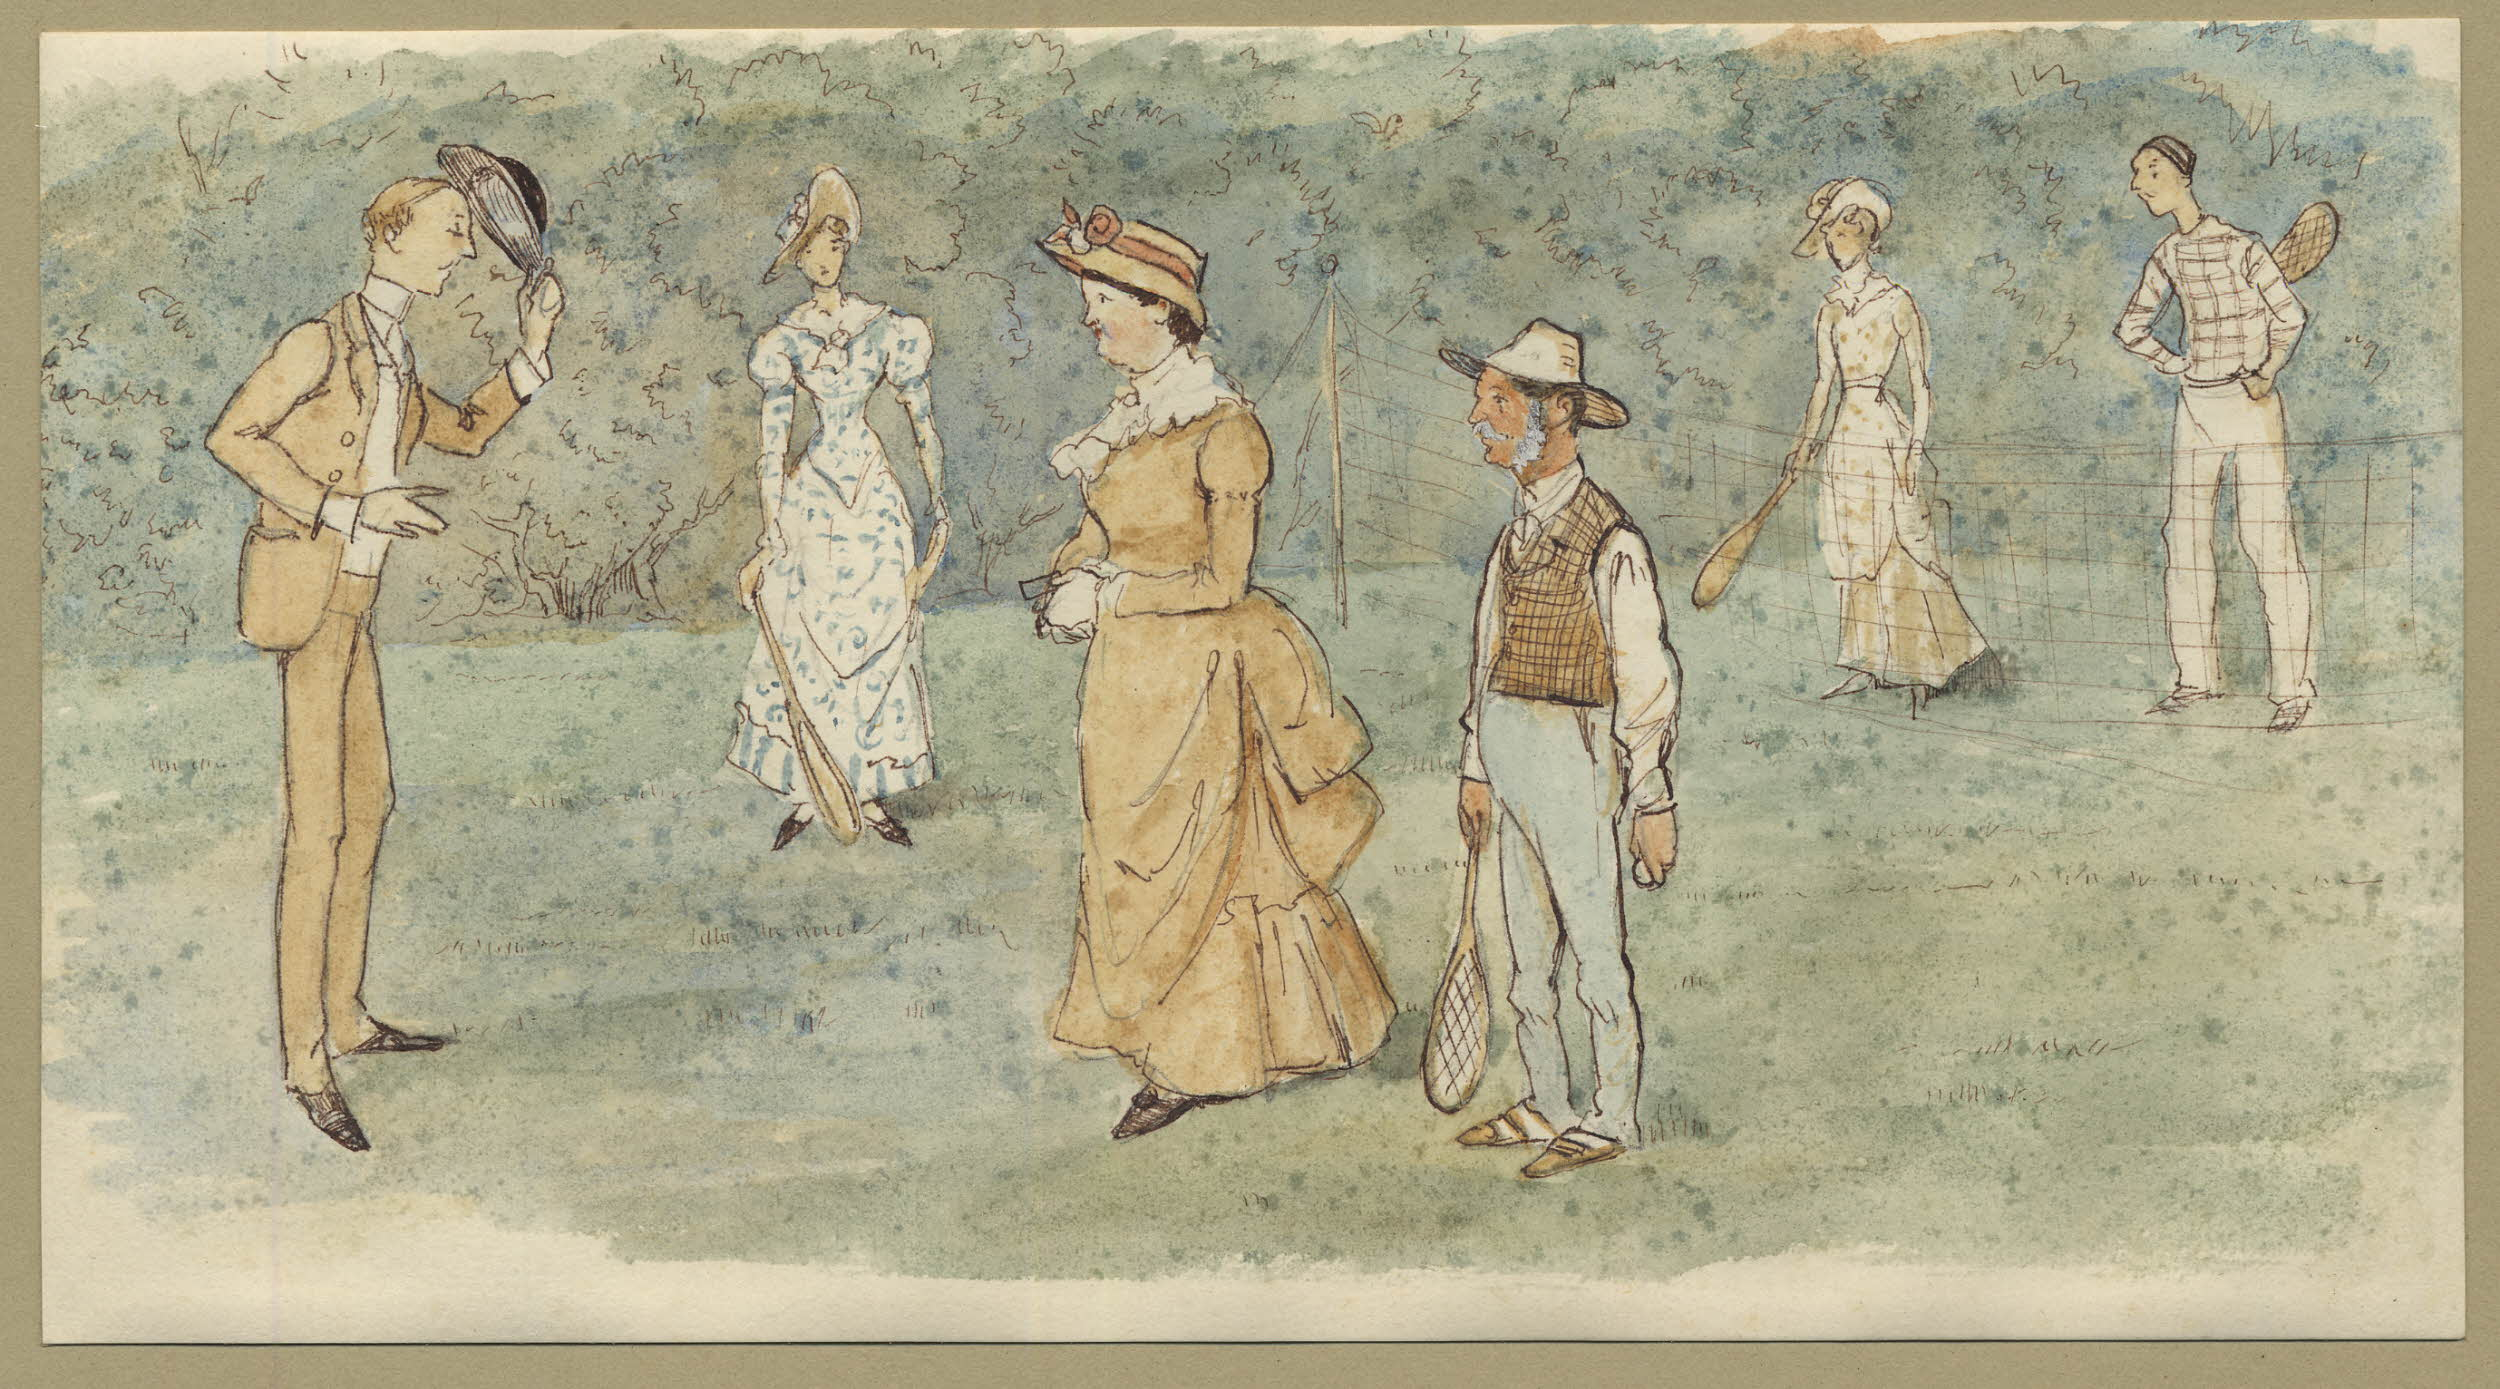 Watercolour. A man doffs his hat to a party of three women and two men on a lawn tennis court. All wear Victorian dress.